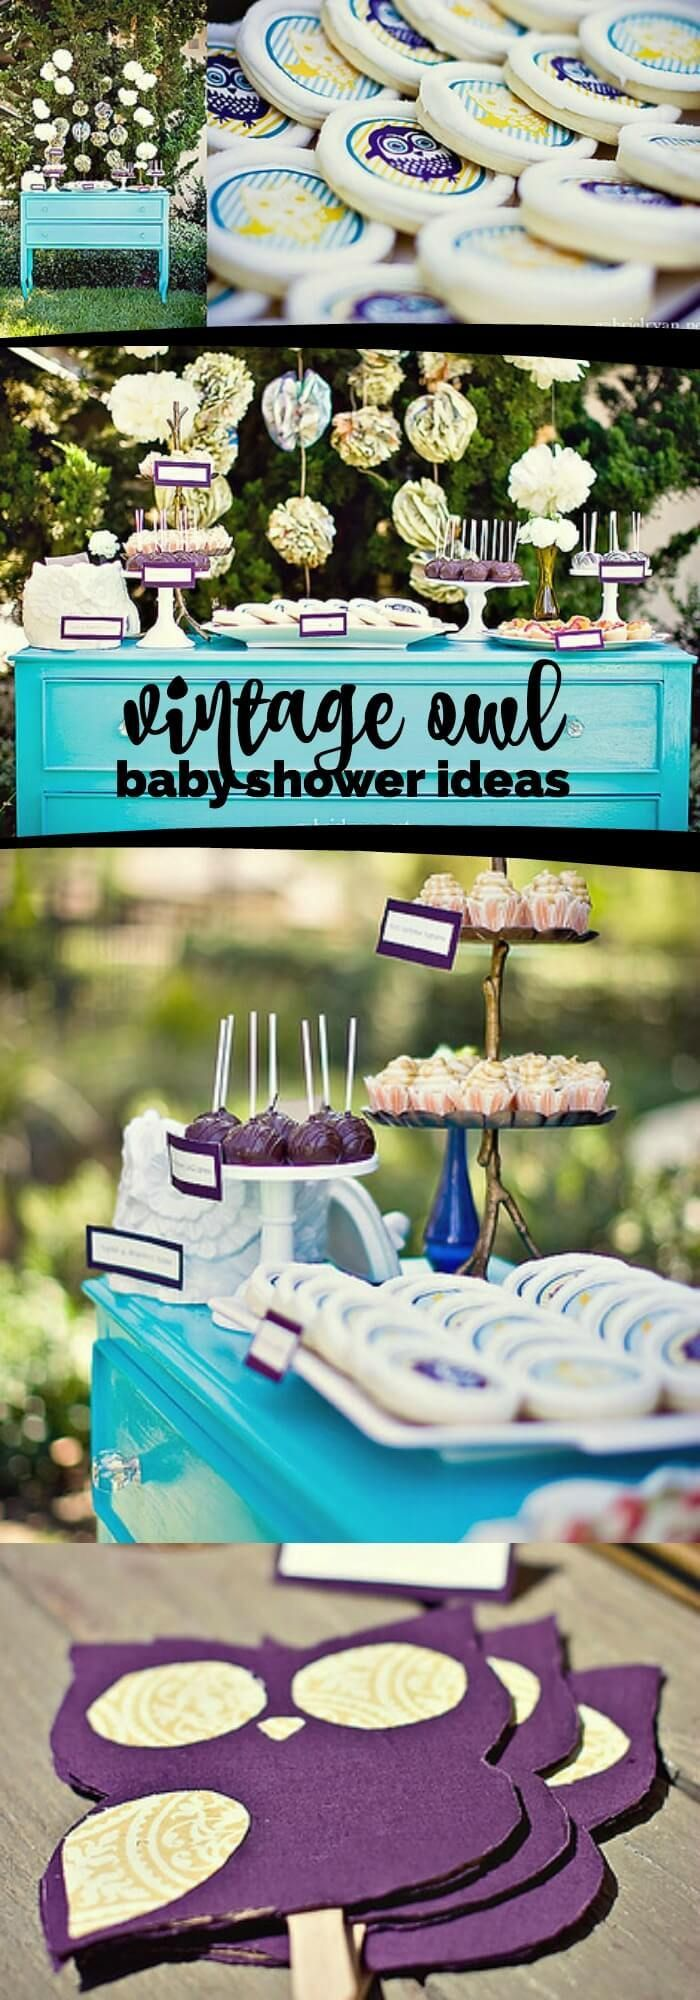 Hosting a baby shower and need some food ideas look no further since - Hosting A Baby Shower And Need Some Food Ideas Look No Further Since Vintage Owl Download